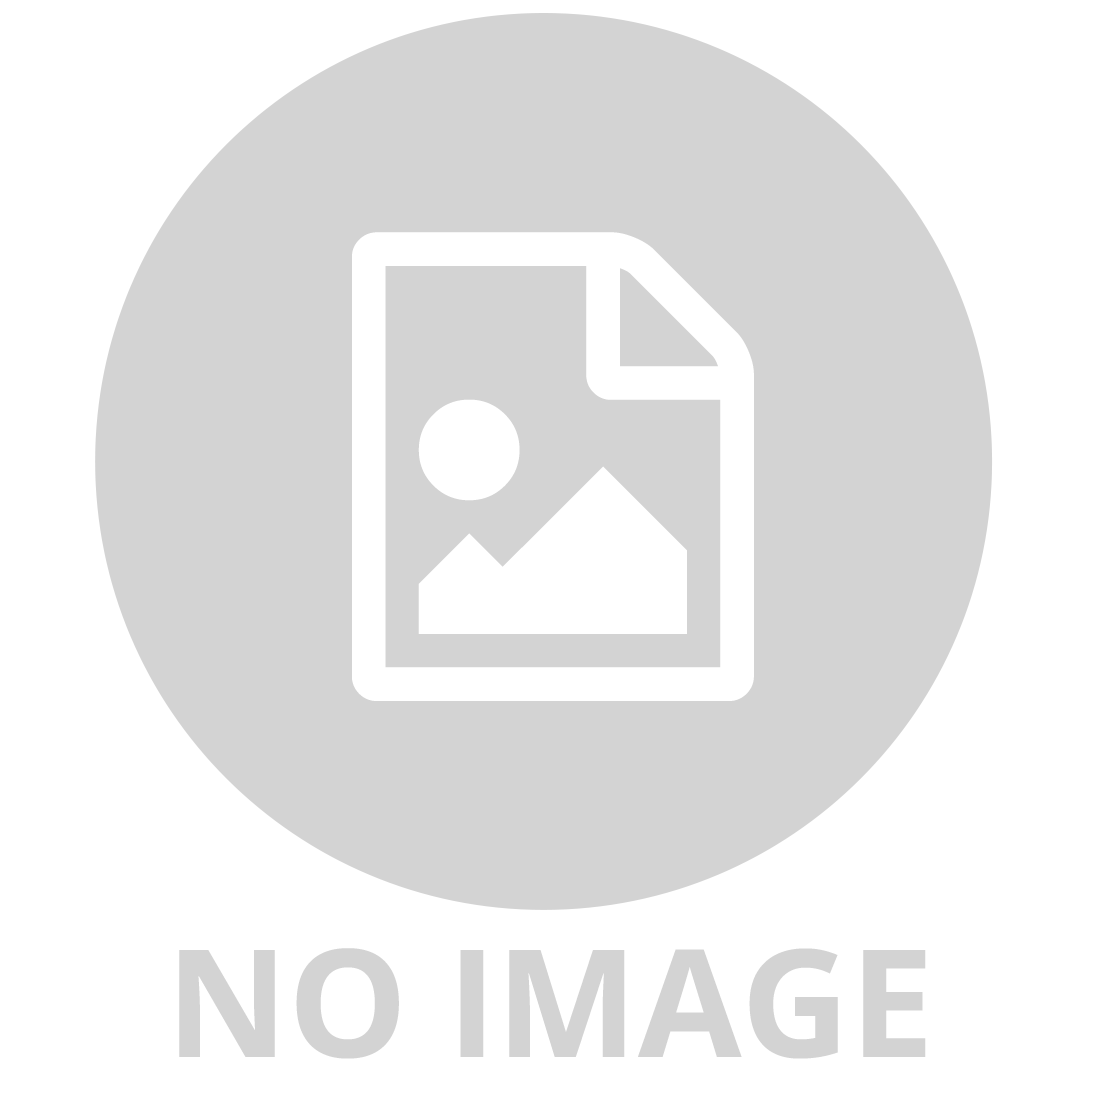 GUNS WESTERN TWIN PLAYSET WITH LIGHTS AND SOUNDS